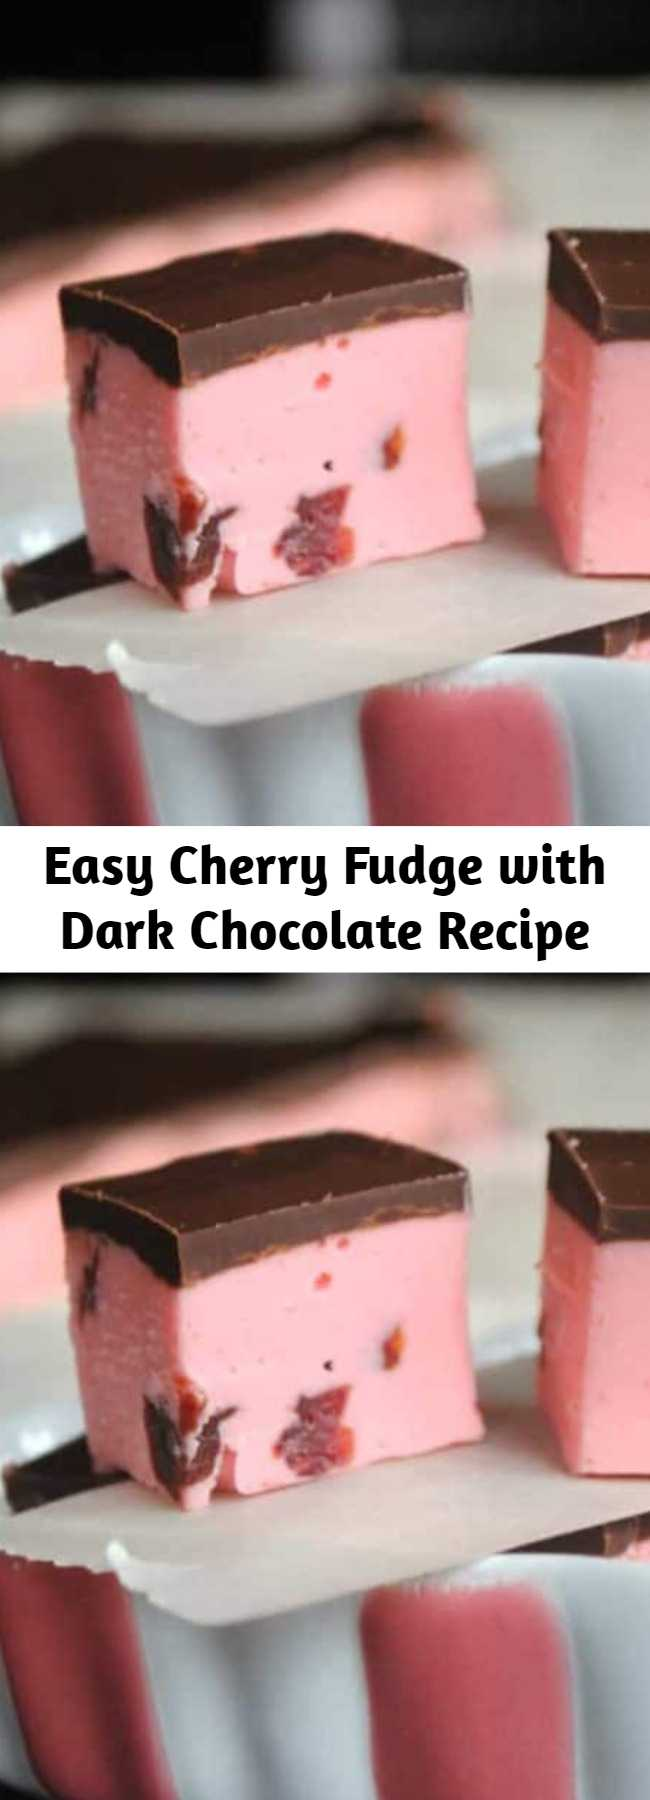 """Easy Cherry Fudge with Dark Chocolate Recipe - The search for the best ever Cherry Fudge recipe is over! Nothing says """"I love you"""" like giving someone a plate of homemade fudge, especially when it's packed with real cherries and topped with silky dark chocolate."""